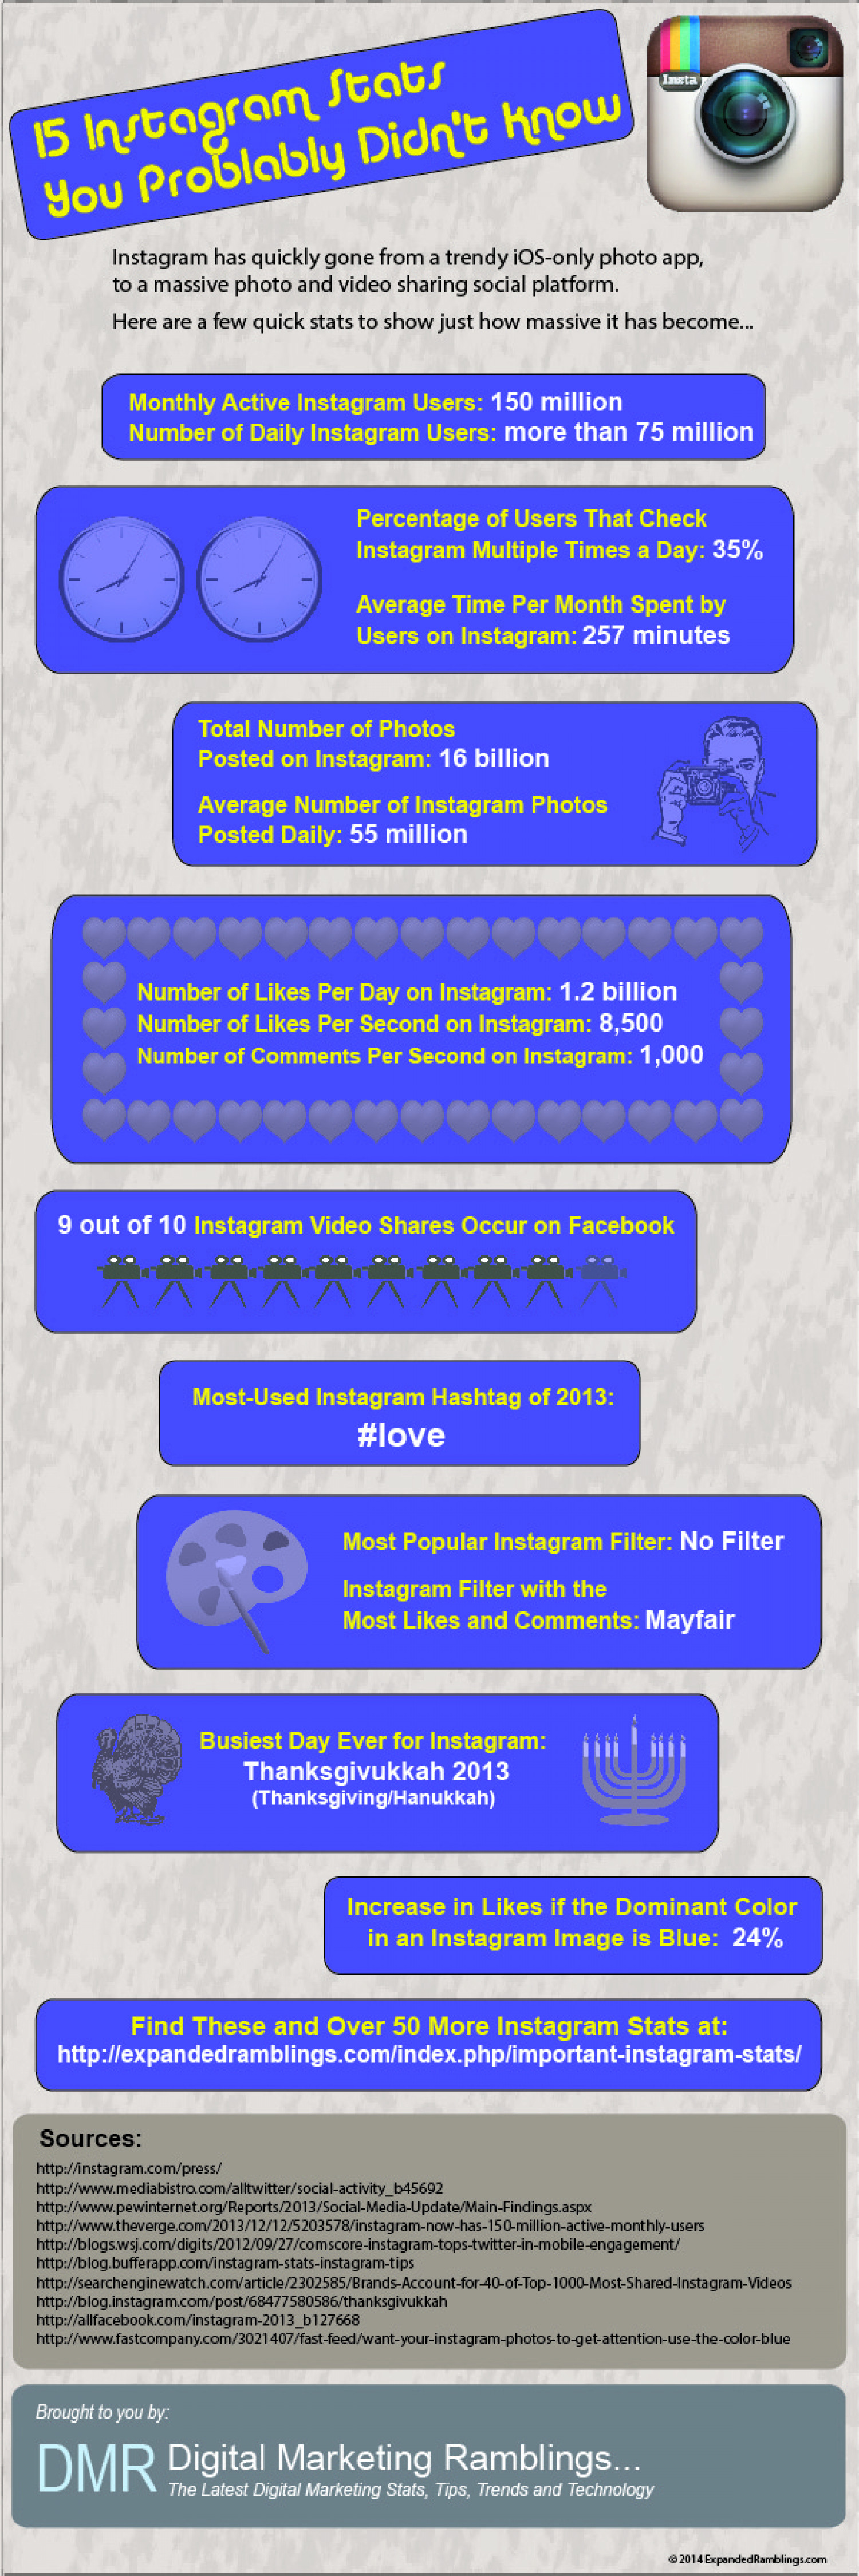 15 Instagram Statistics You Probably Didn't Know Infographic